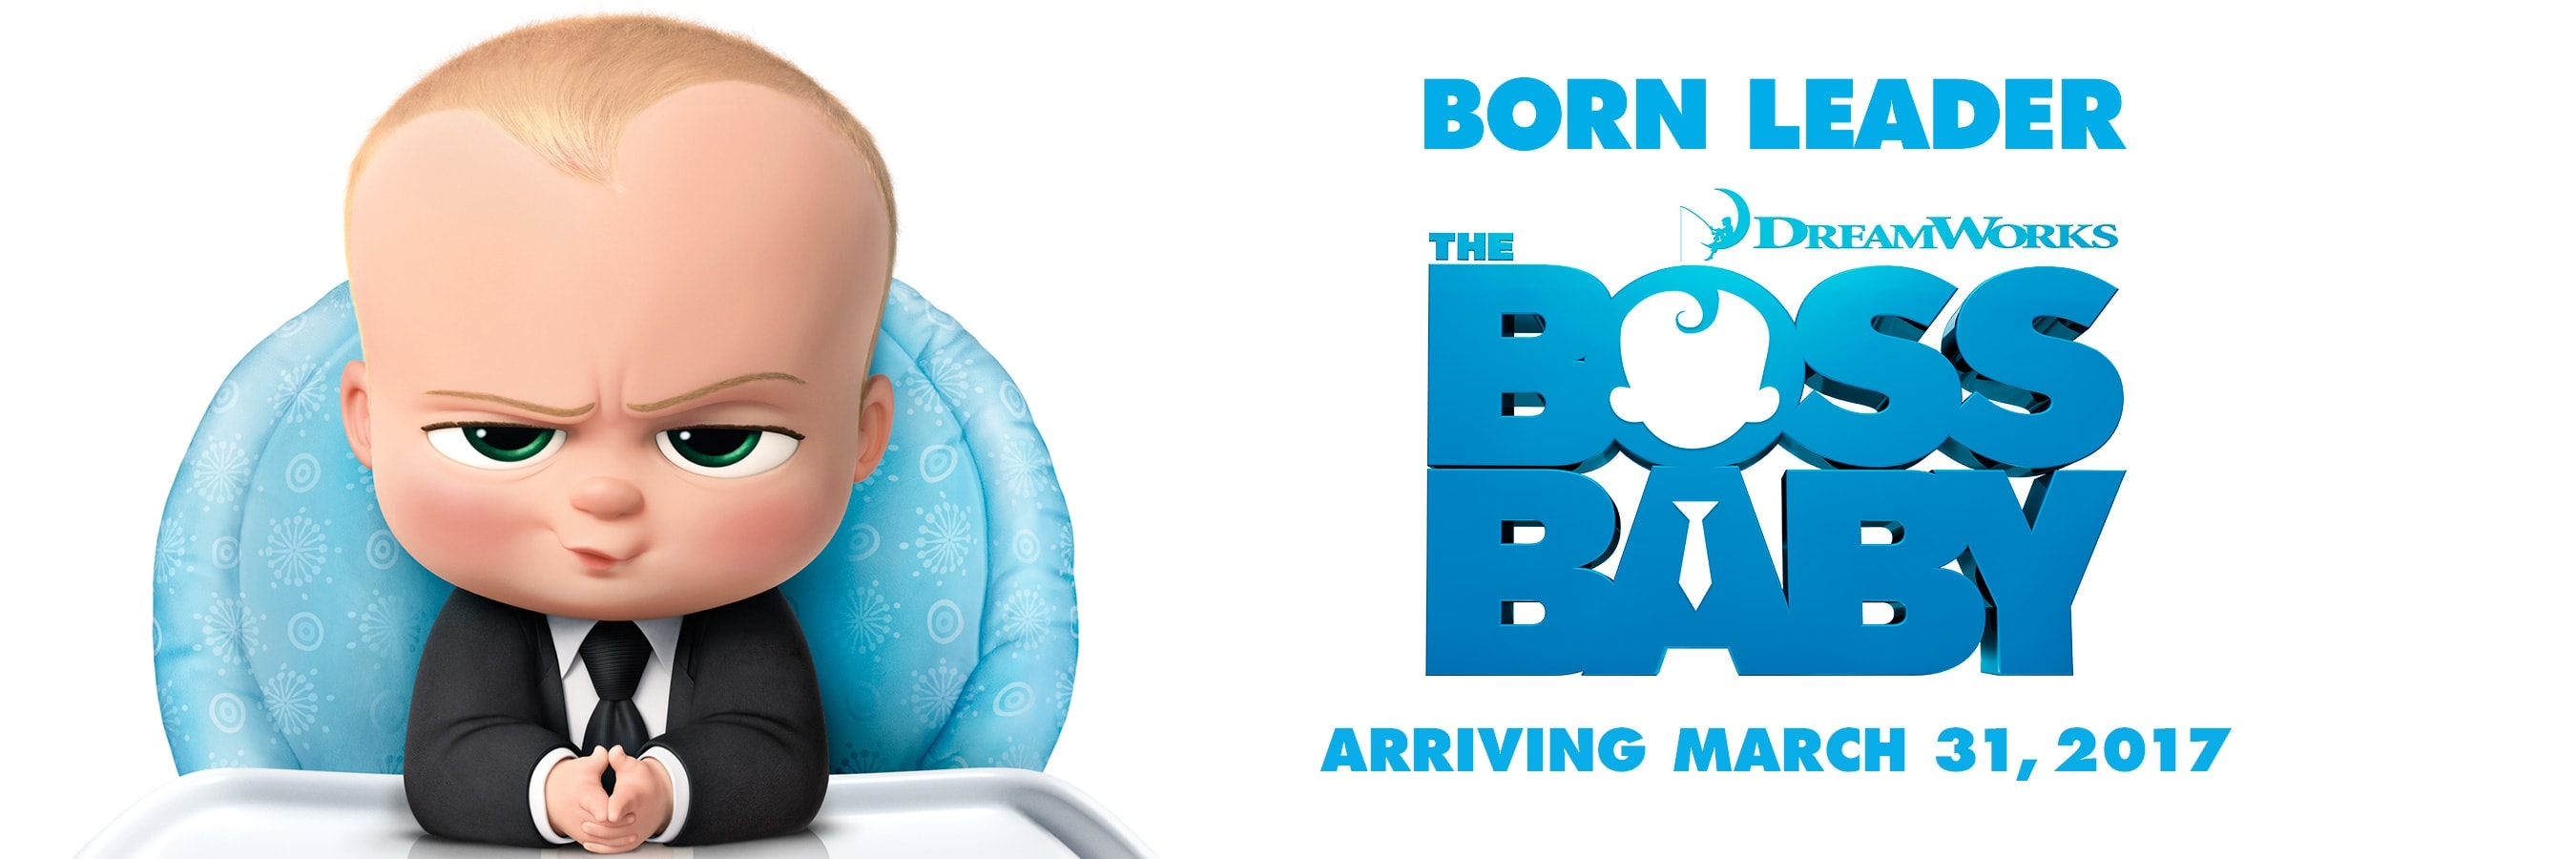 The Boss Baby Hd Wallpapers 7wallpapers Net